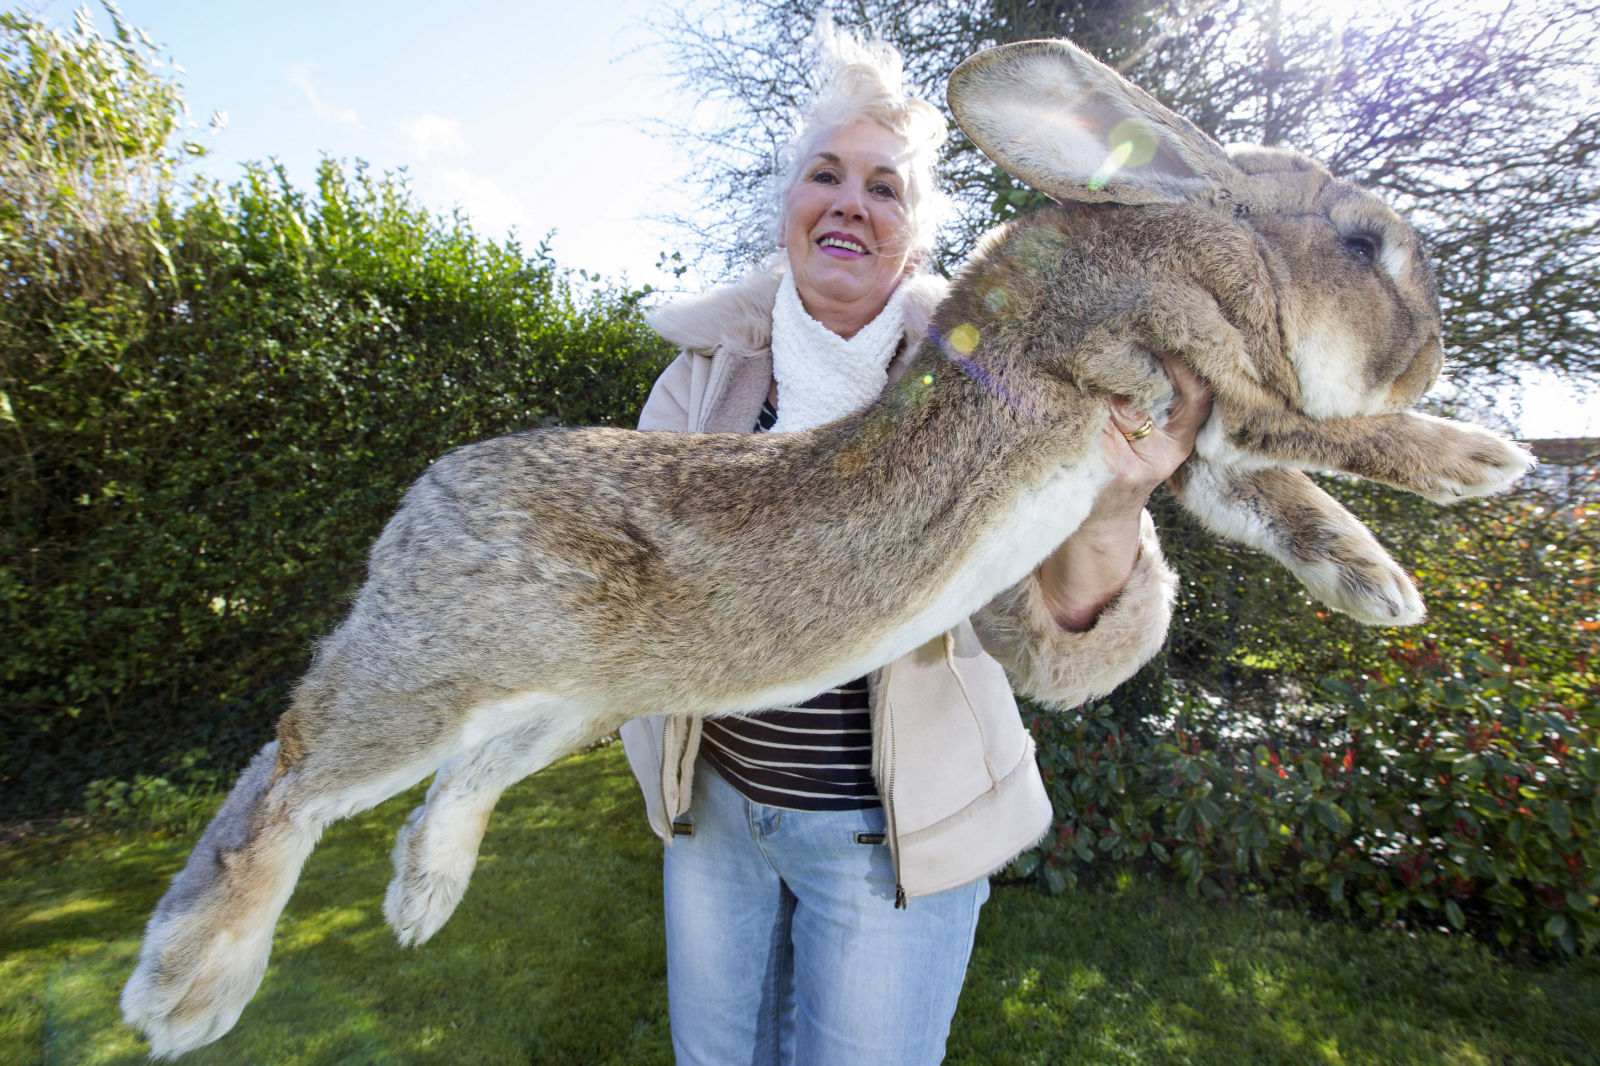 The World's Largest Rabbit Is Facing Competition From His ...